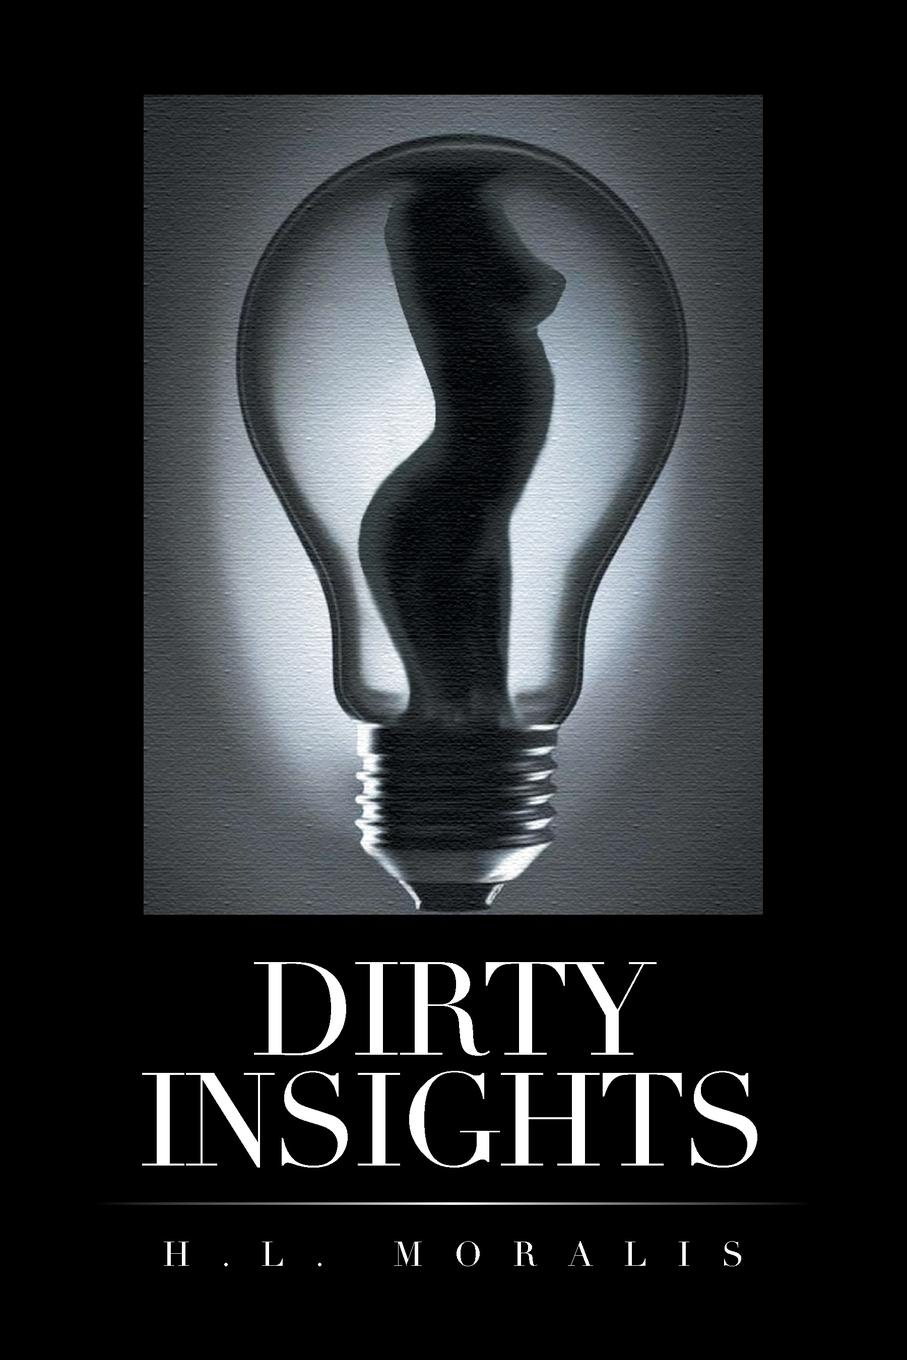 H.L. MORALIS Dirty Insights